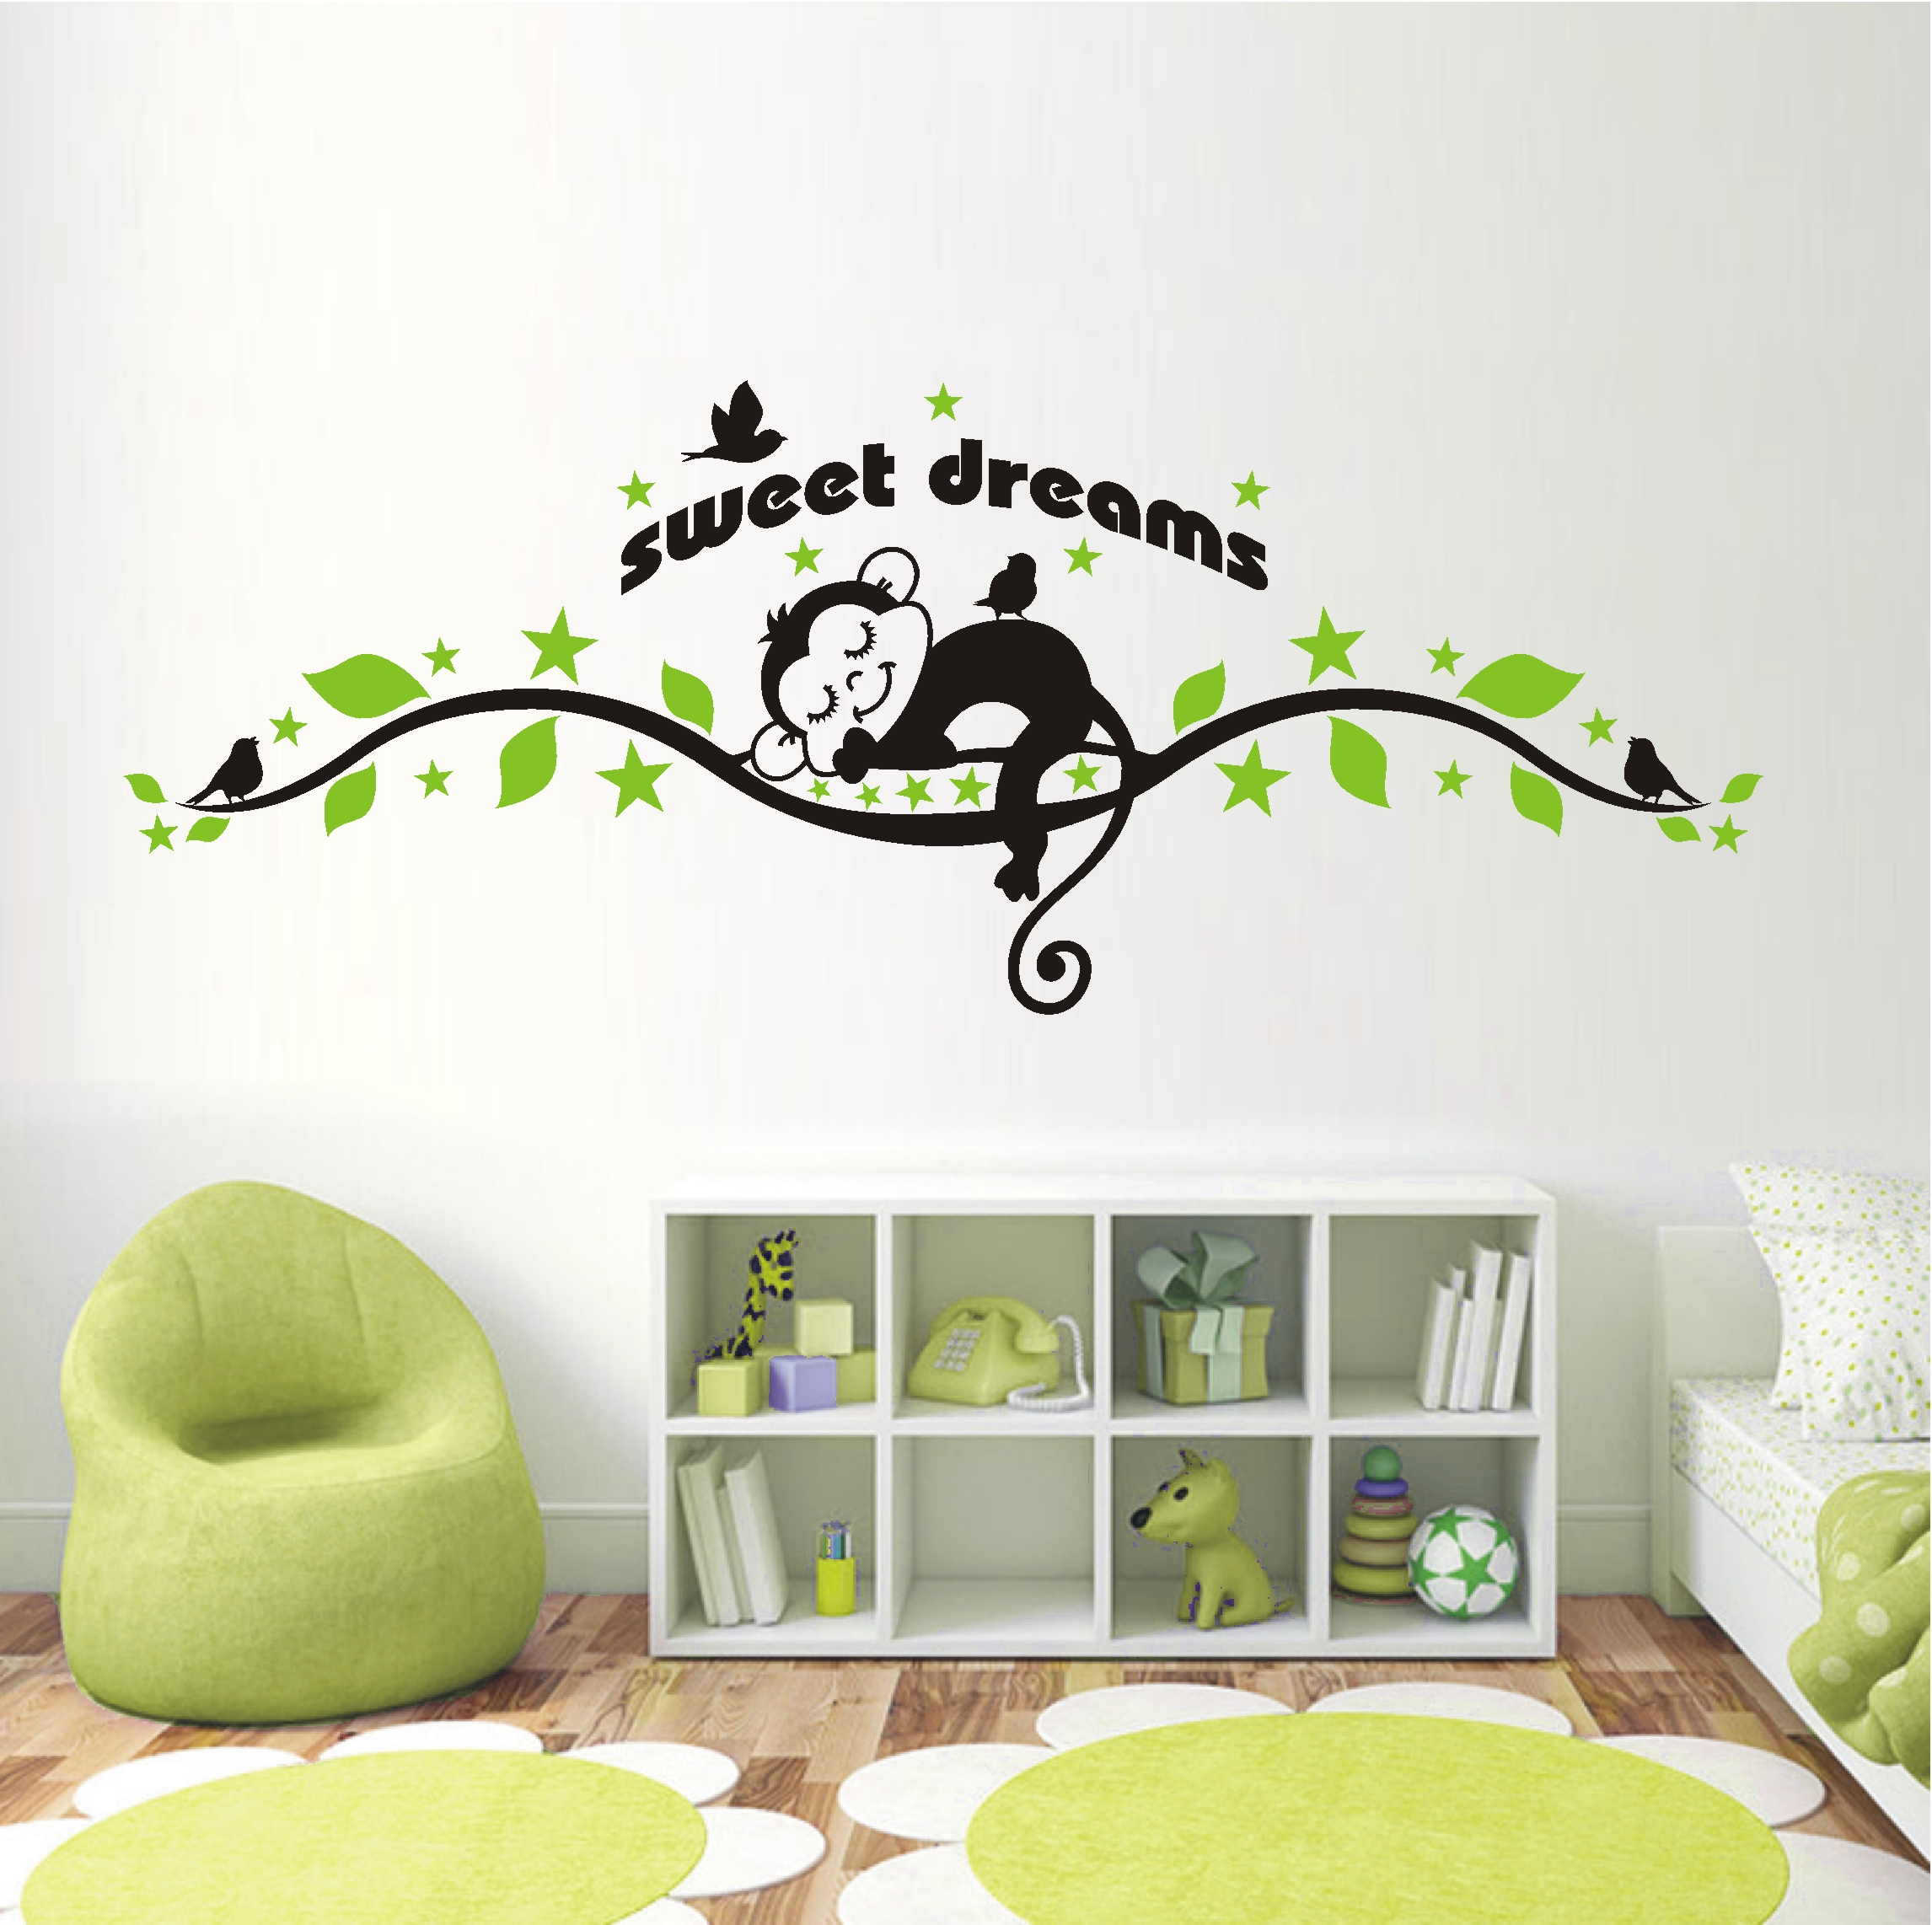 deko shop wandtattoo sweet dreams ffchen 2 farbig deko shop. Black Bedroom Furniture Sets. Home Design Ideas